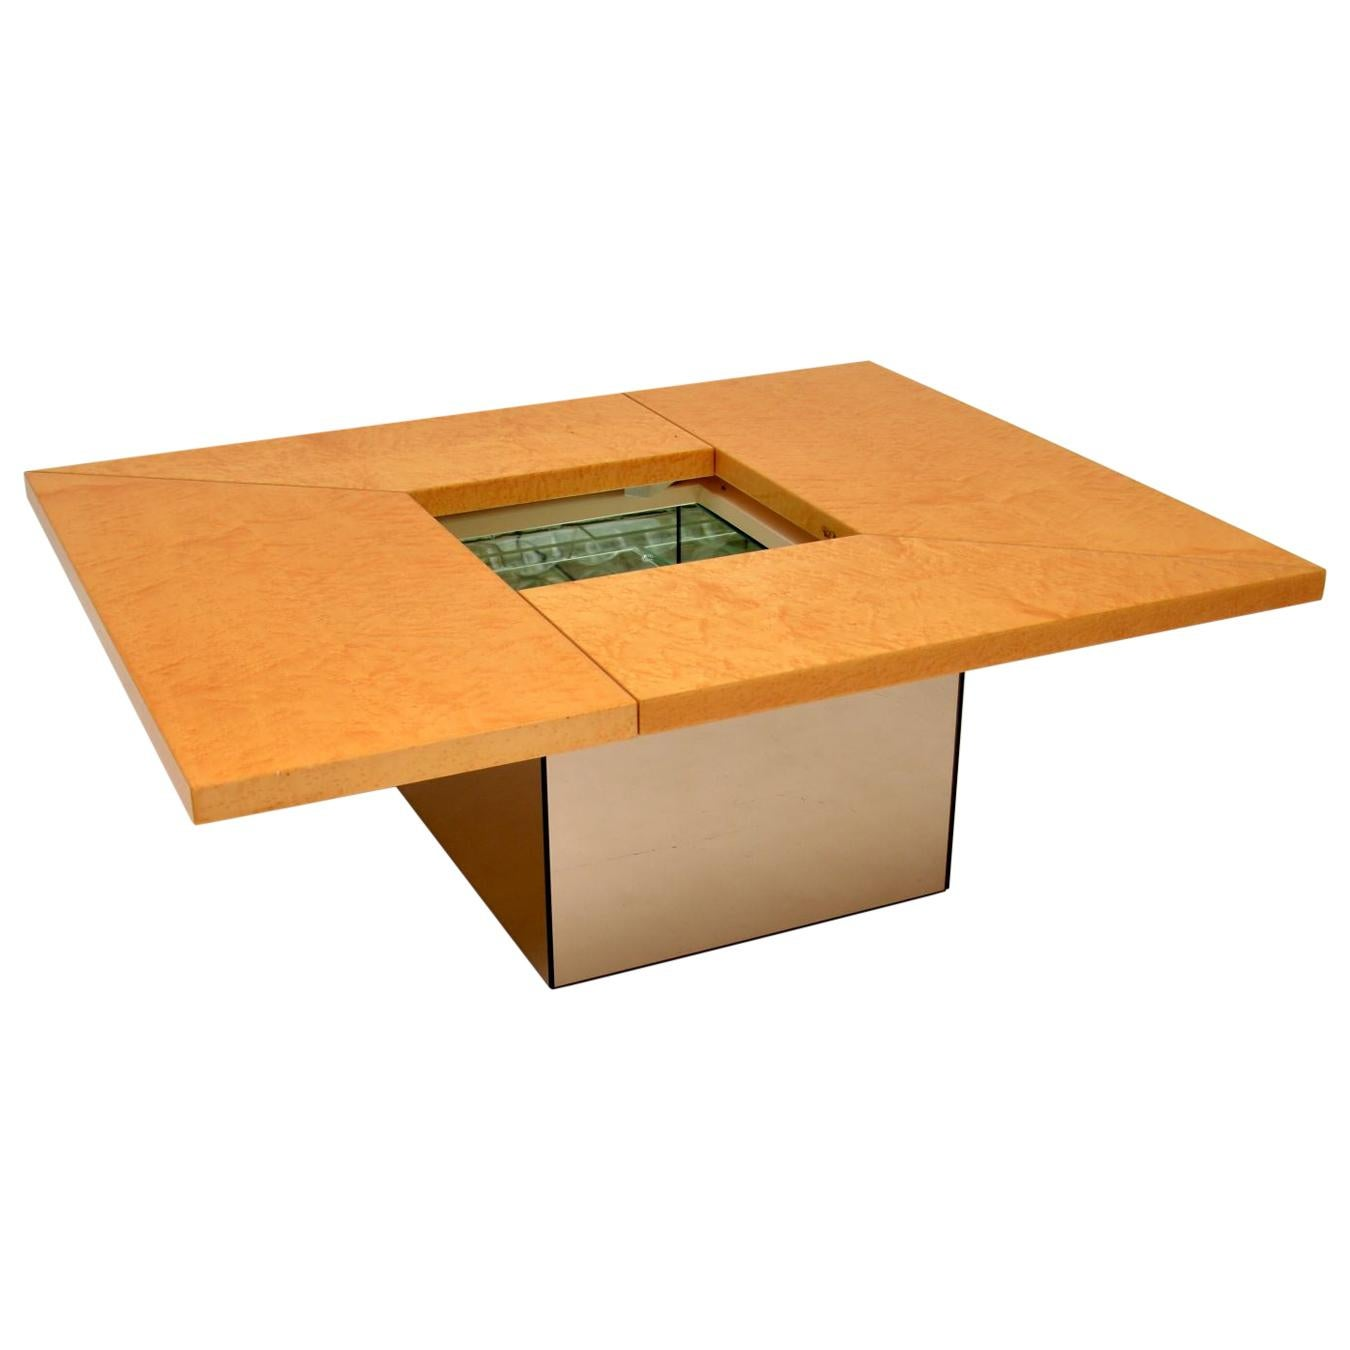 1970s French Bird's-Eye Maple Coffee Table by Paul Michel